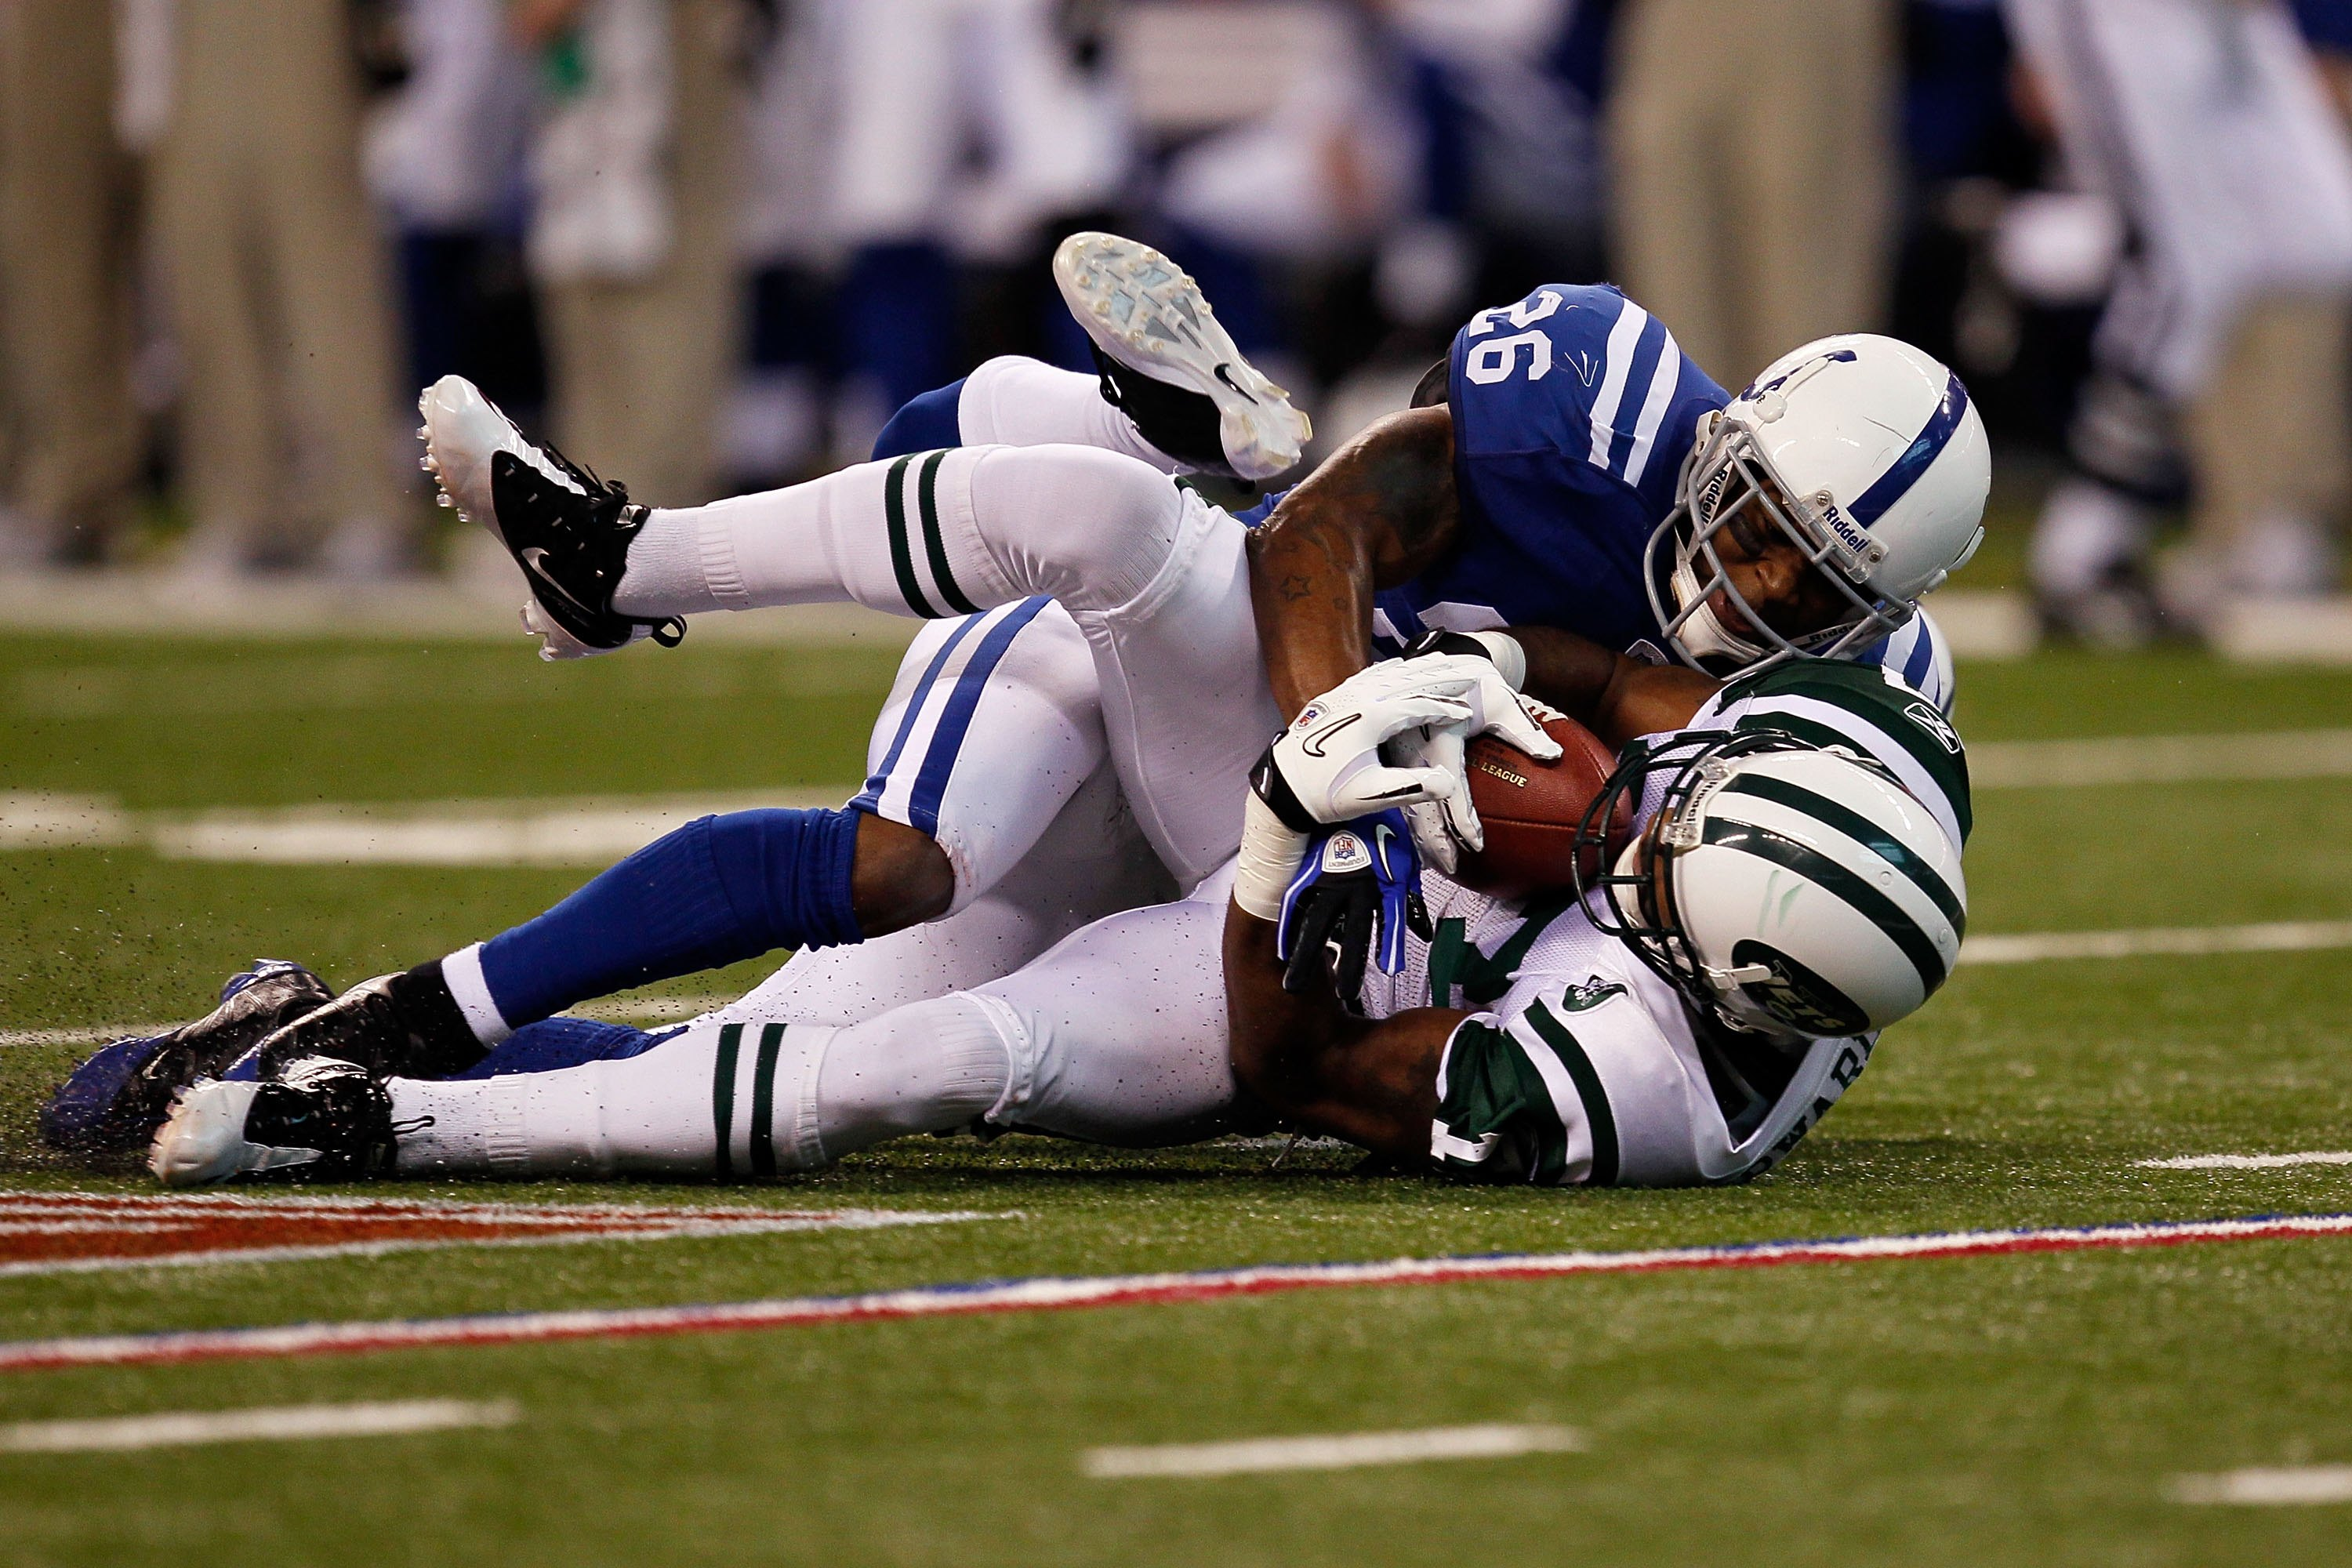 INDIANAPOLIS - JANUARY 24:  Wide receiver Braylon Edwards #17 of the New York Jets is tackled by Kelvin Hayden #26 of the Indianapolis Colts during the AFC Championship Game at Lucas Oil Stadium on January 24, 2010 in Indianapolis, Indiana.  (Photo by Jon